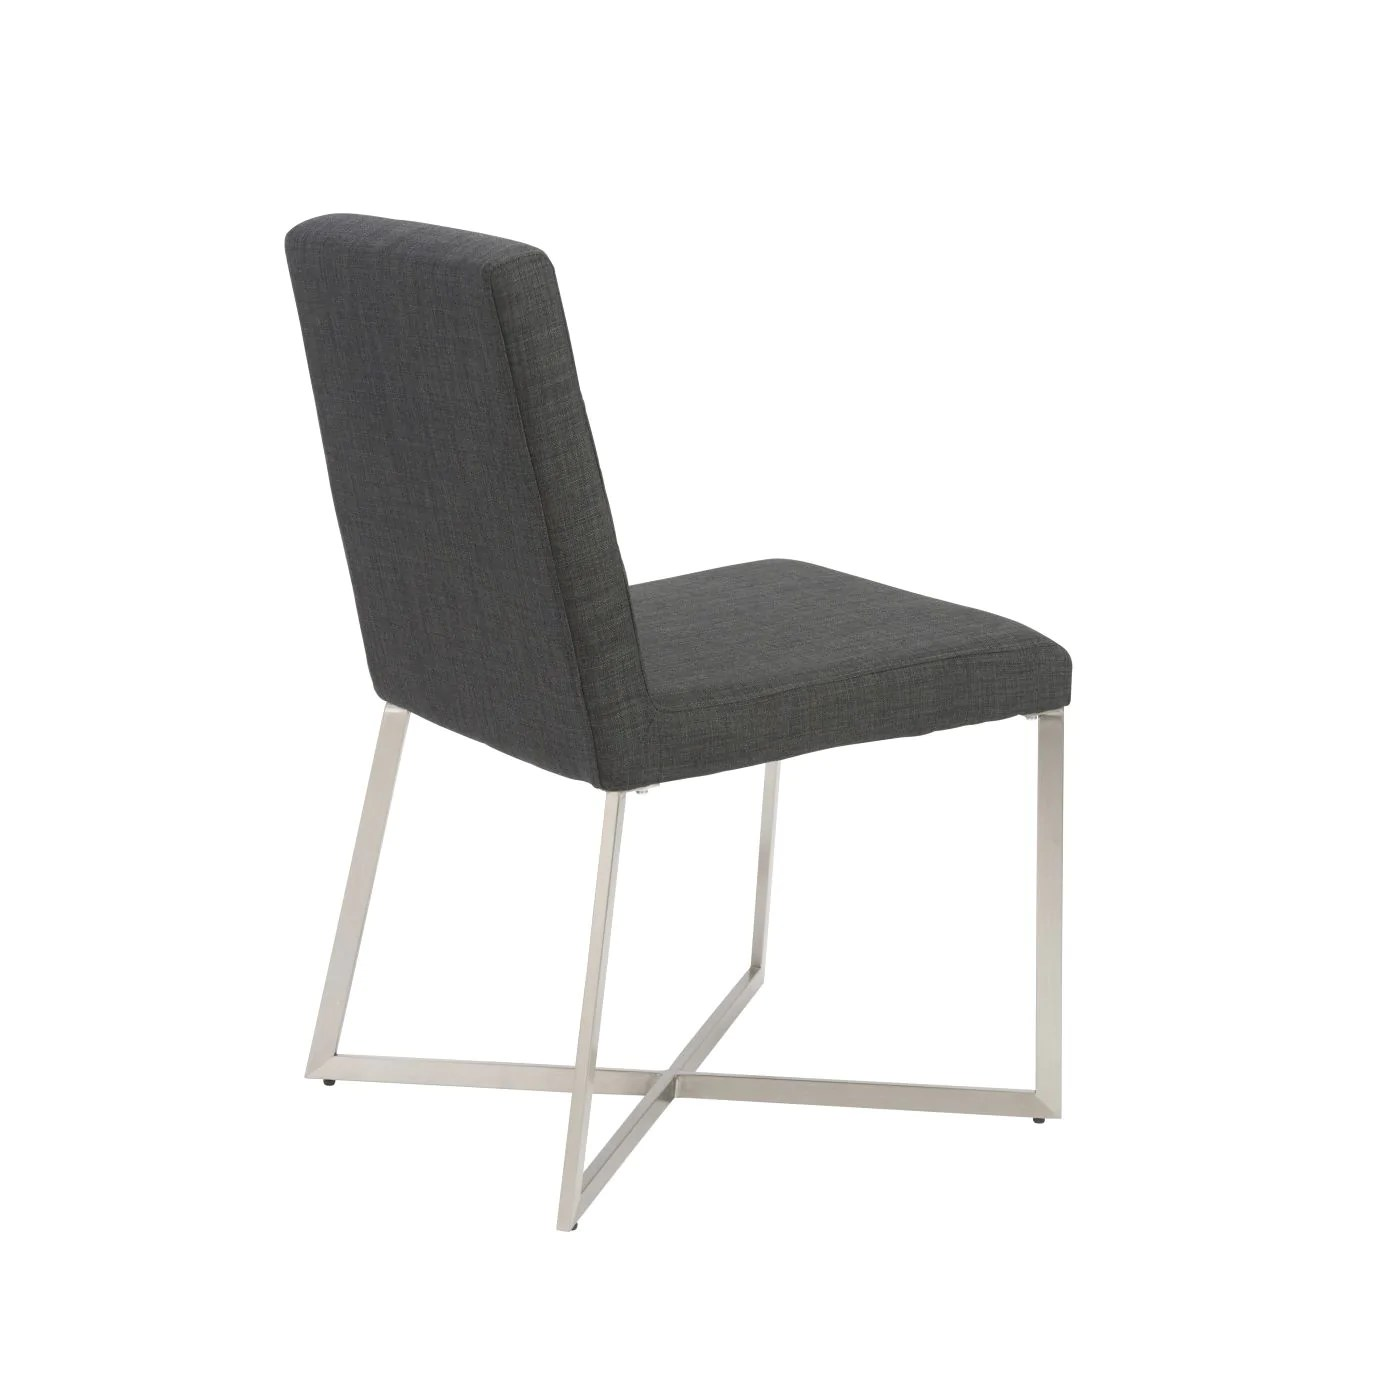 dining chairs with stainless steel legs contemporary white leather chair euro style 38619char tosca in charcoal